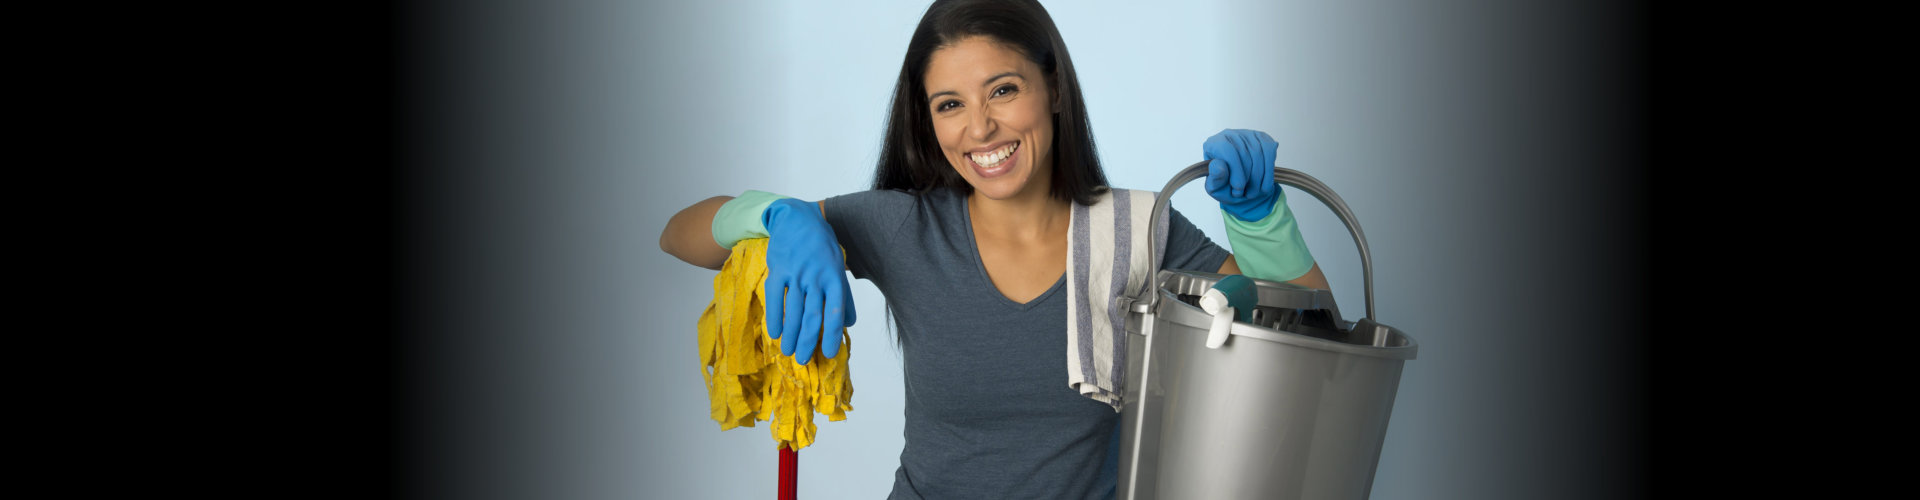 woman holding a cleaning tools